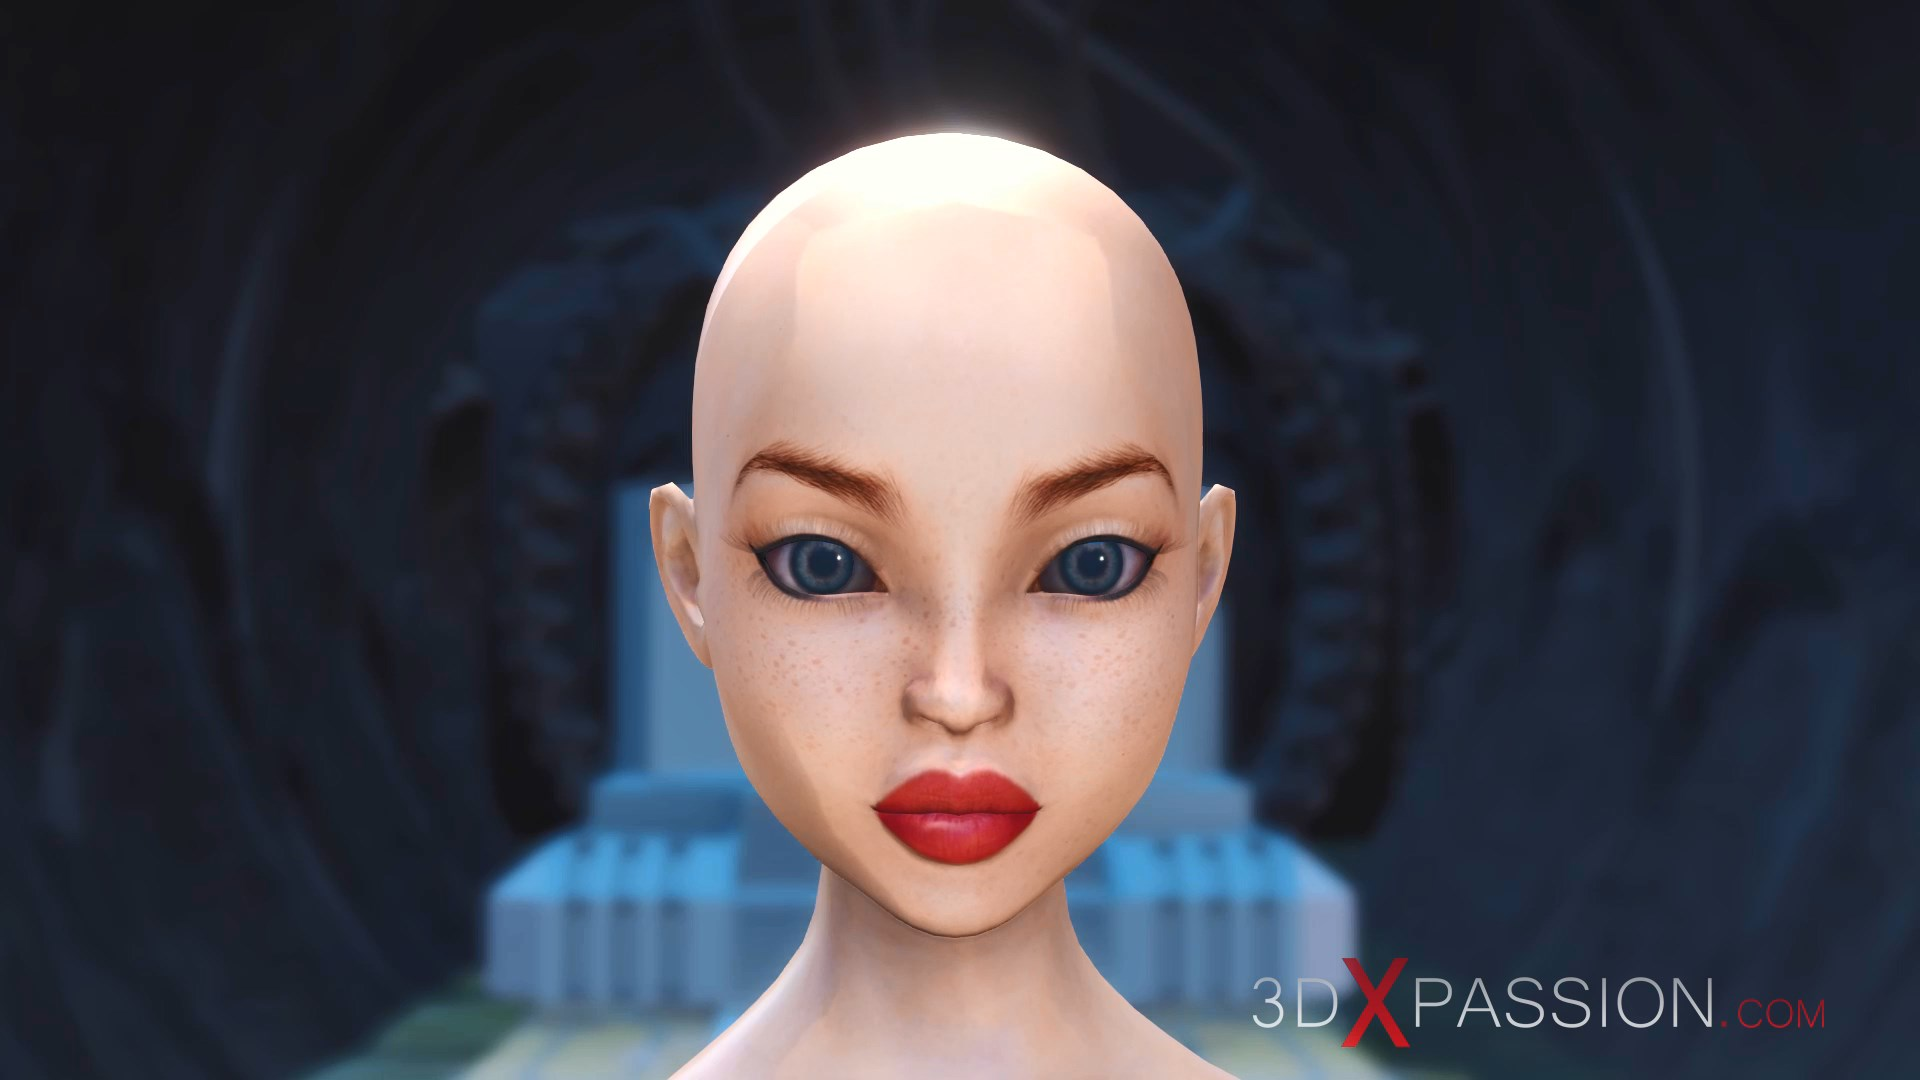 Bald head slave girl fucked  Hell princess exoplanet